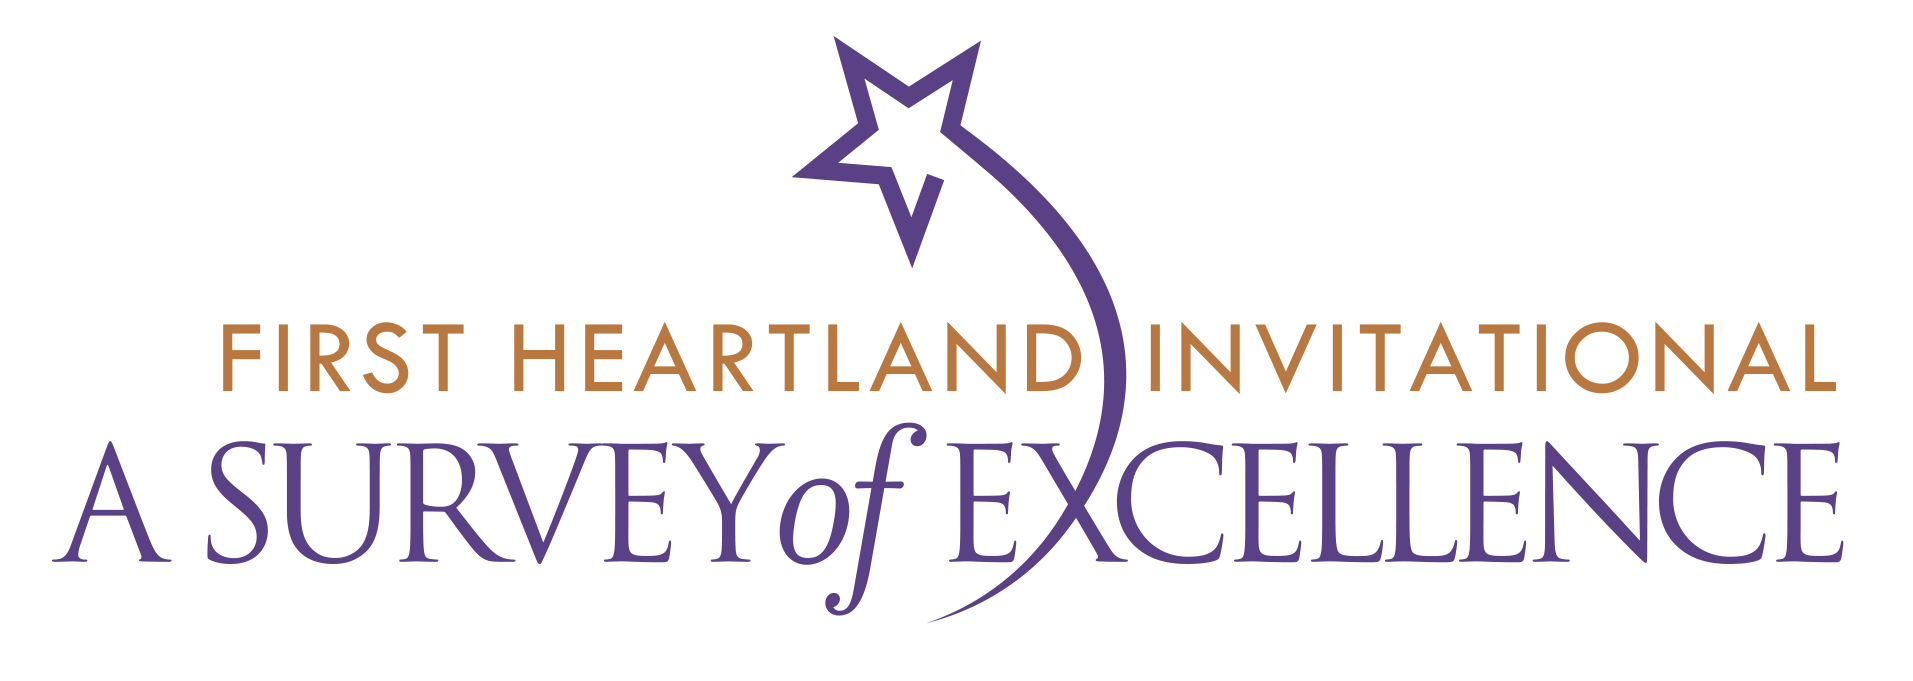 Heartland Art Club Exhibition: A Survey of Excellence